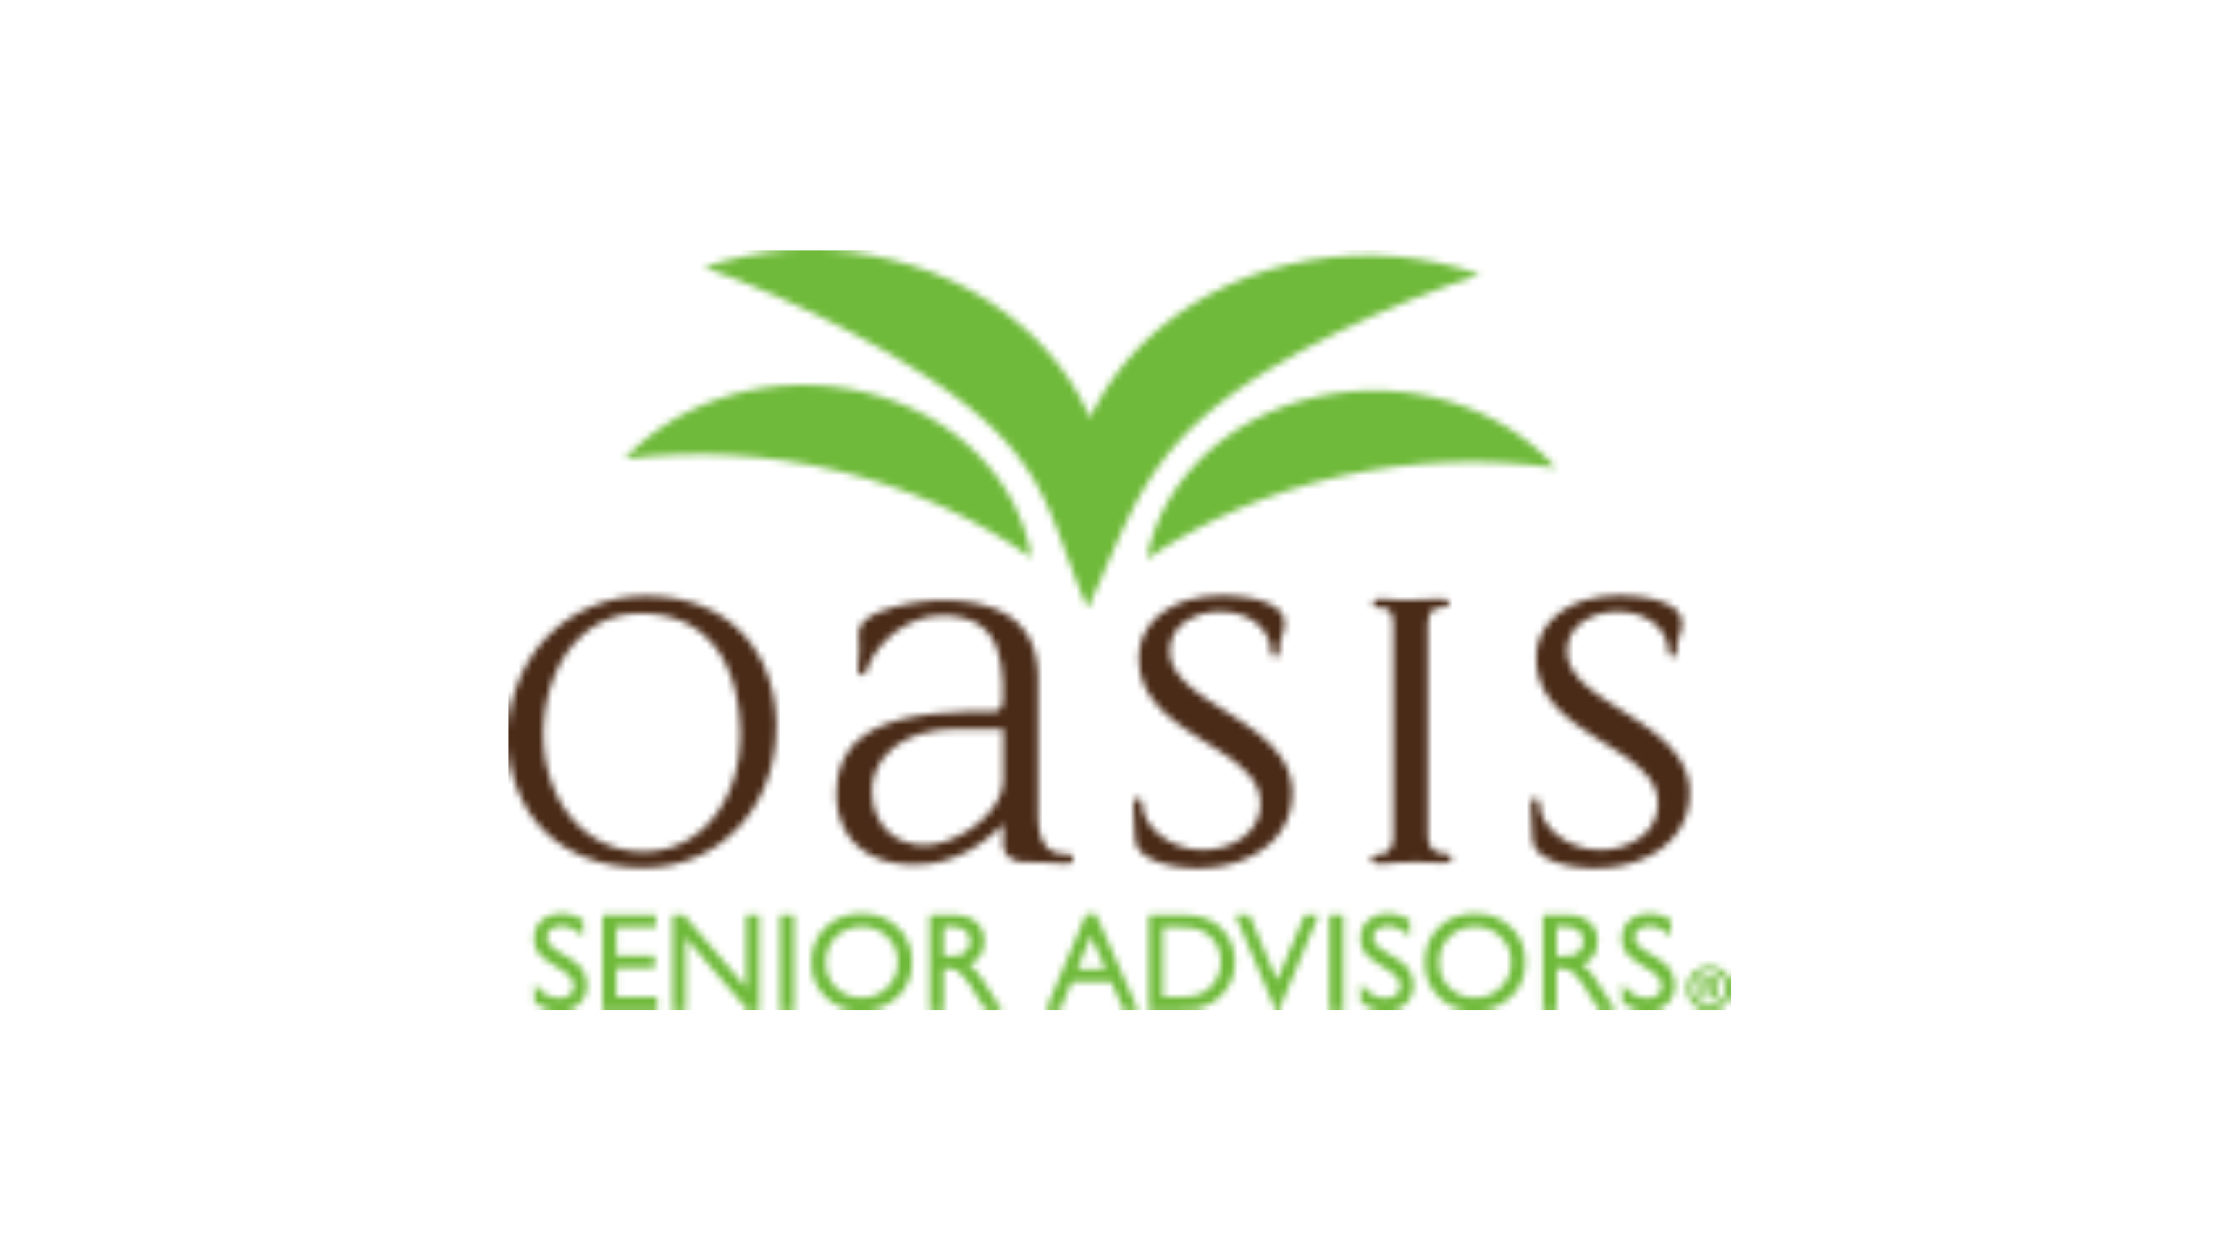 Five new franchise locations provide personal service from Oasis Senior Advisors